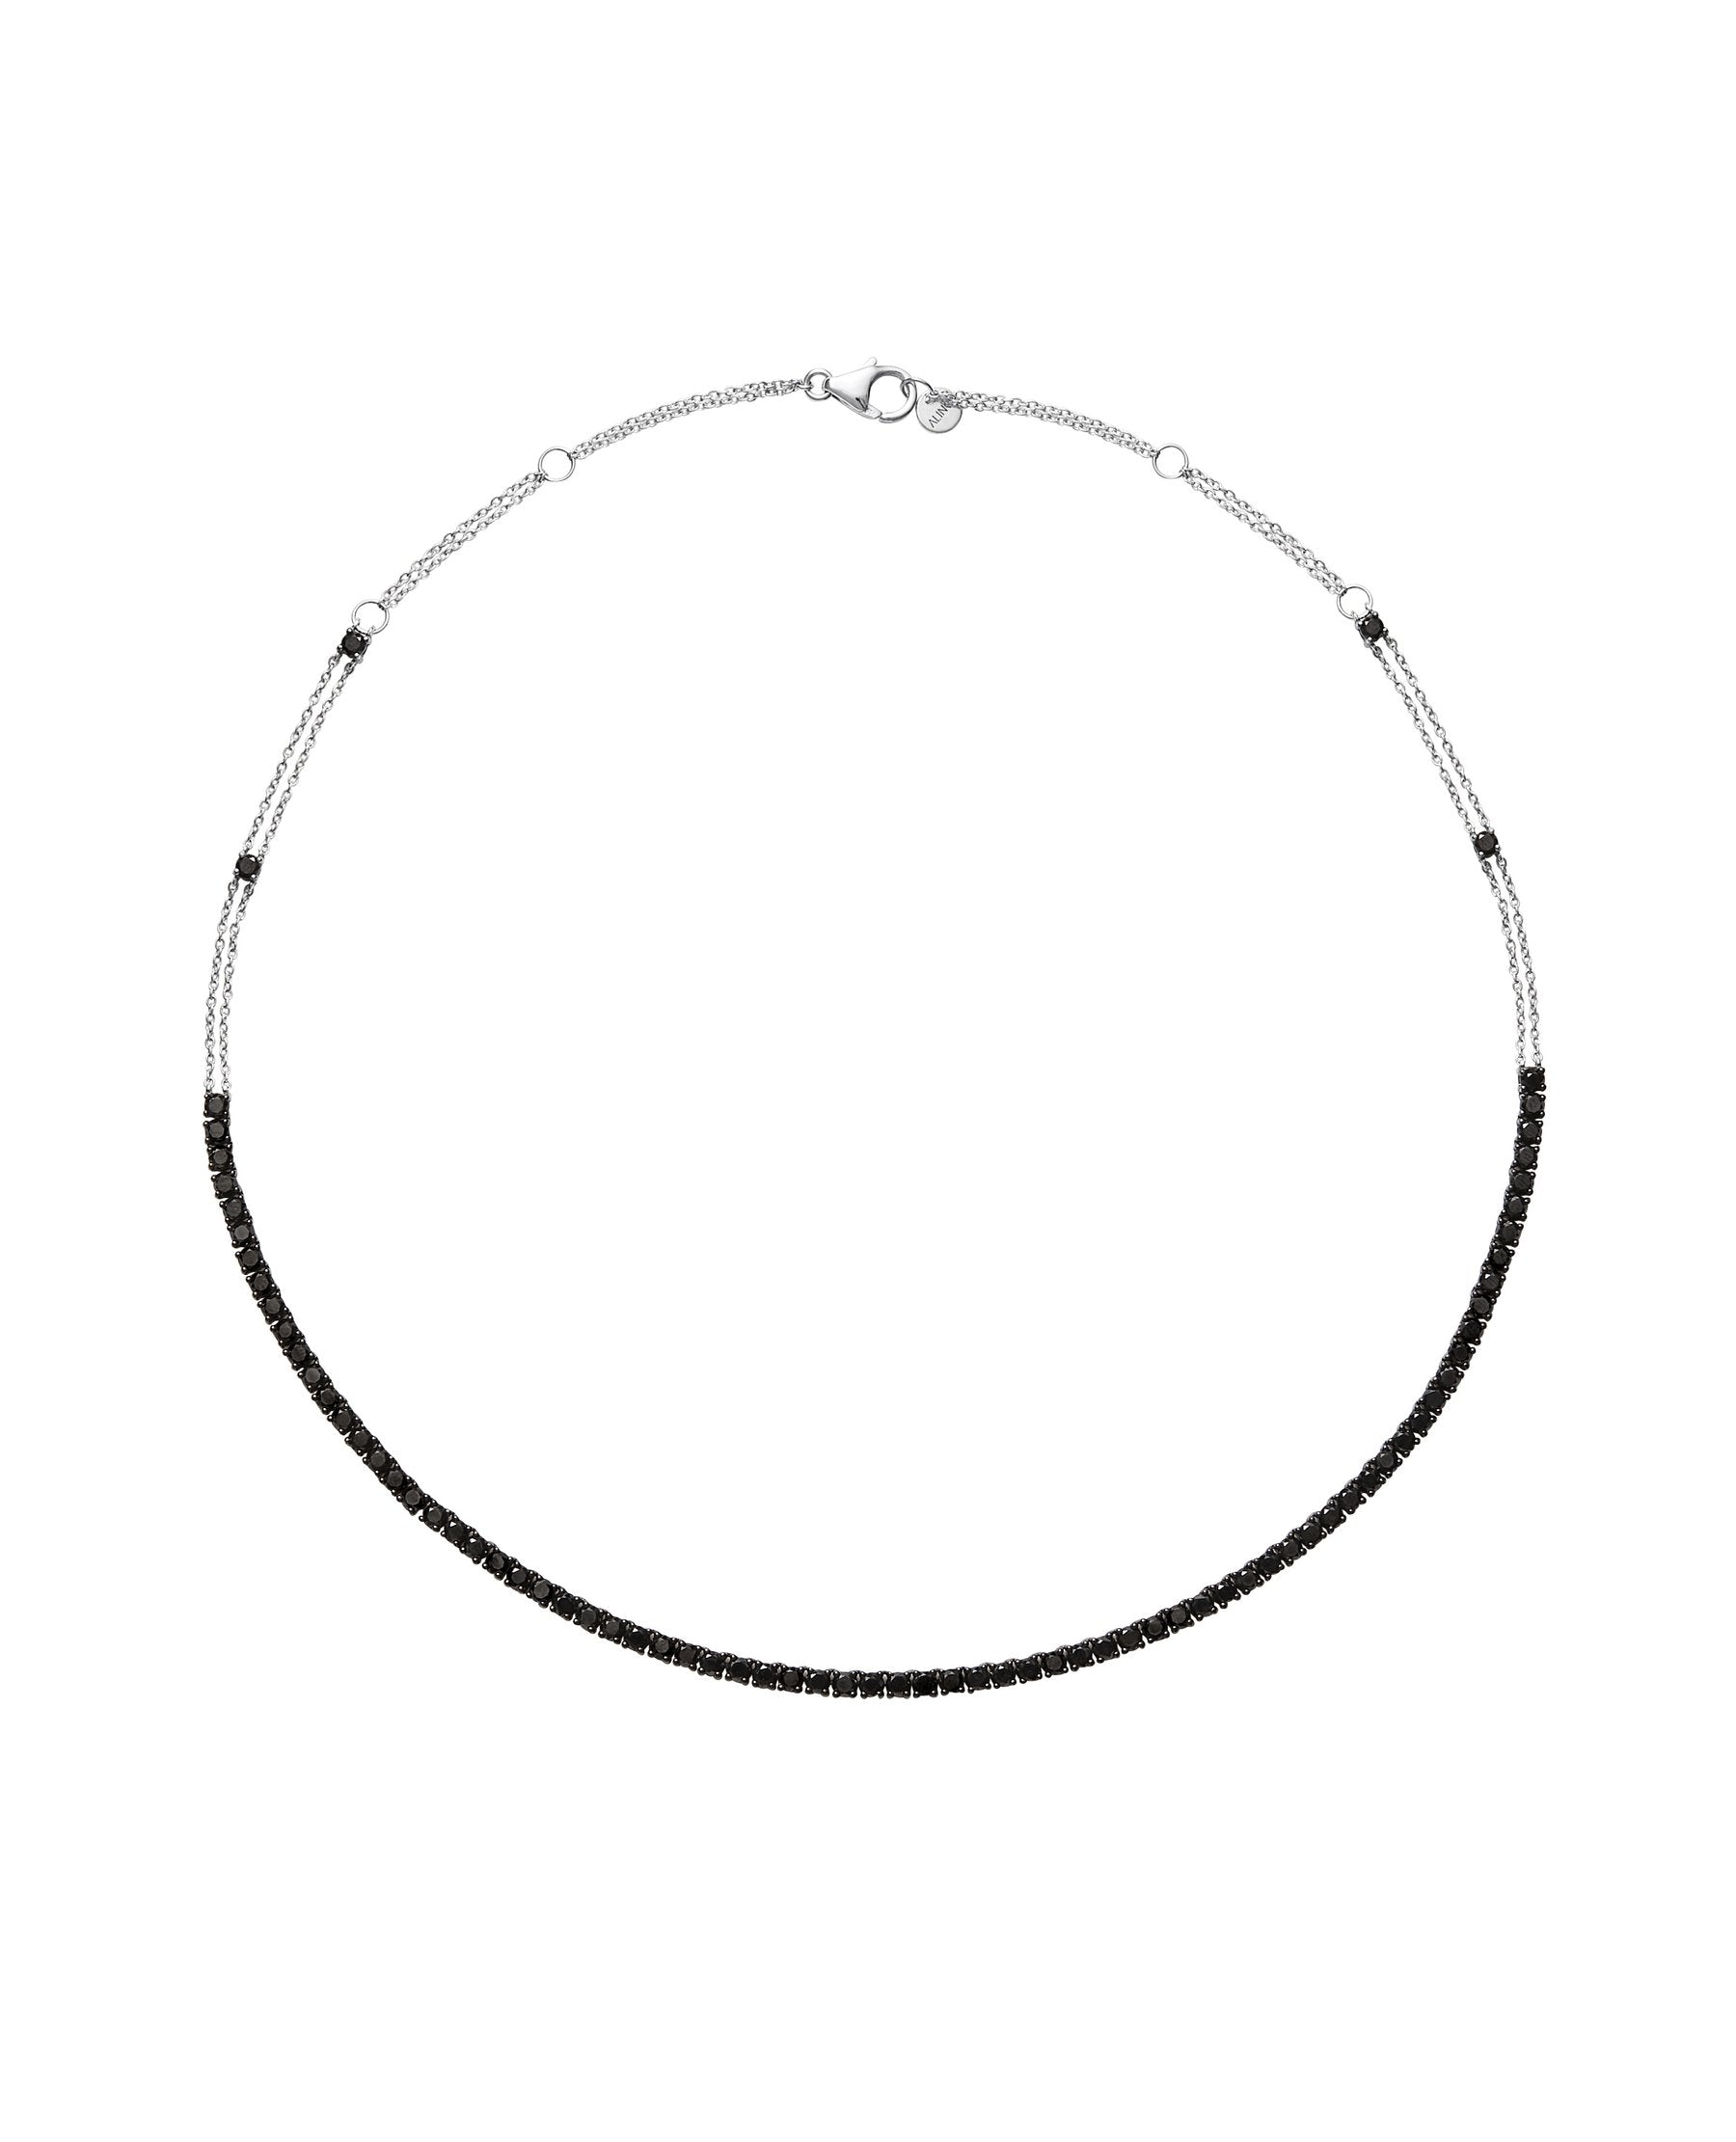 RIVIERA Black Diamond Necklace 8.00ct